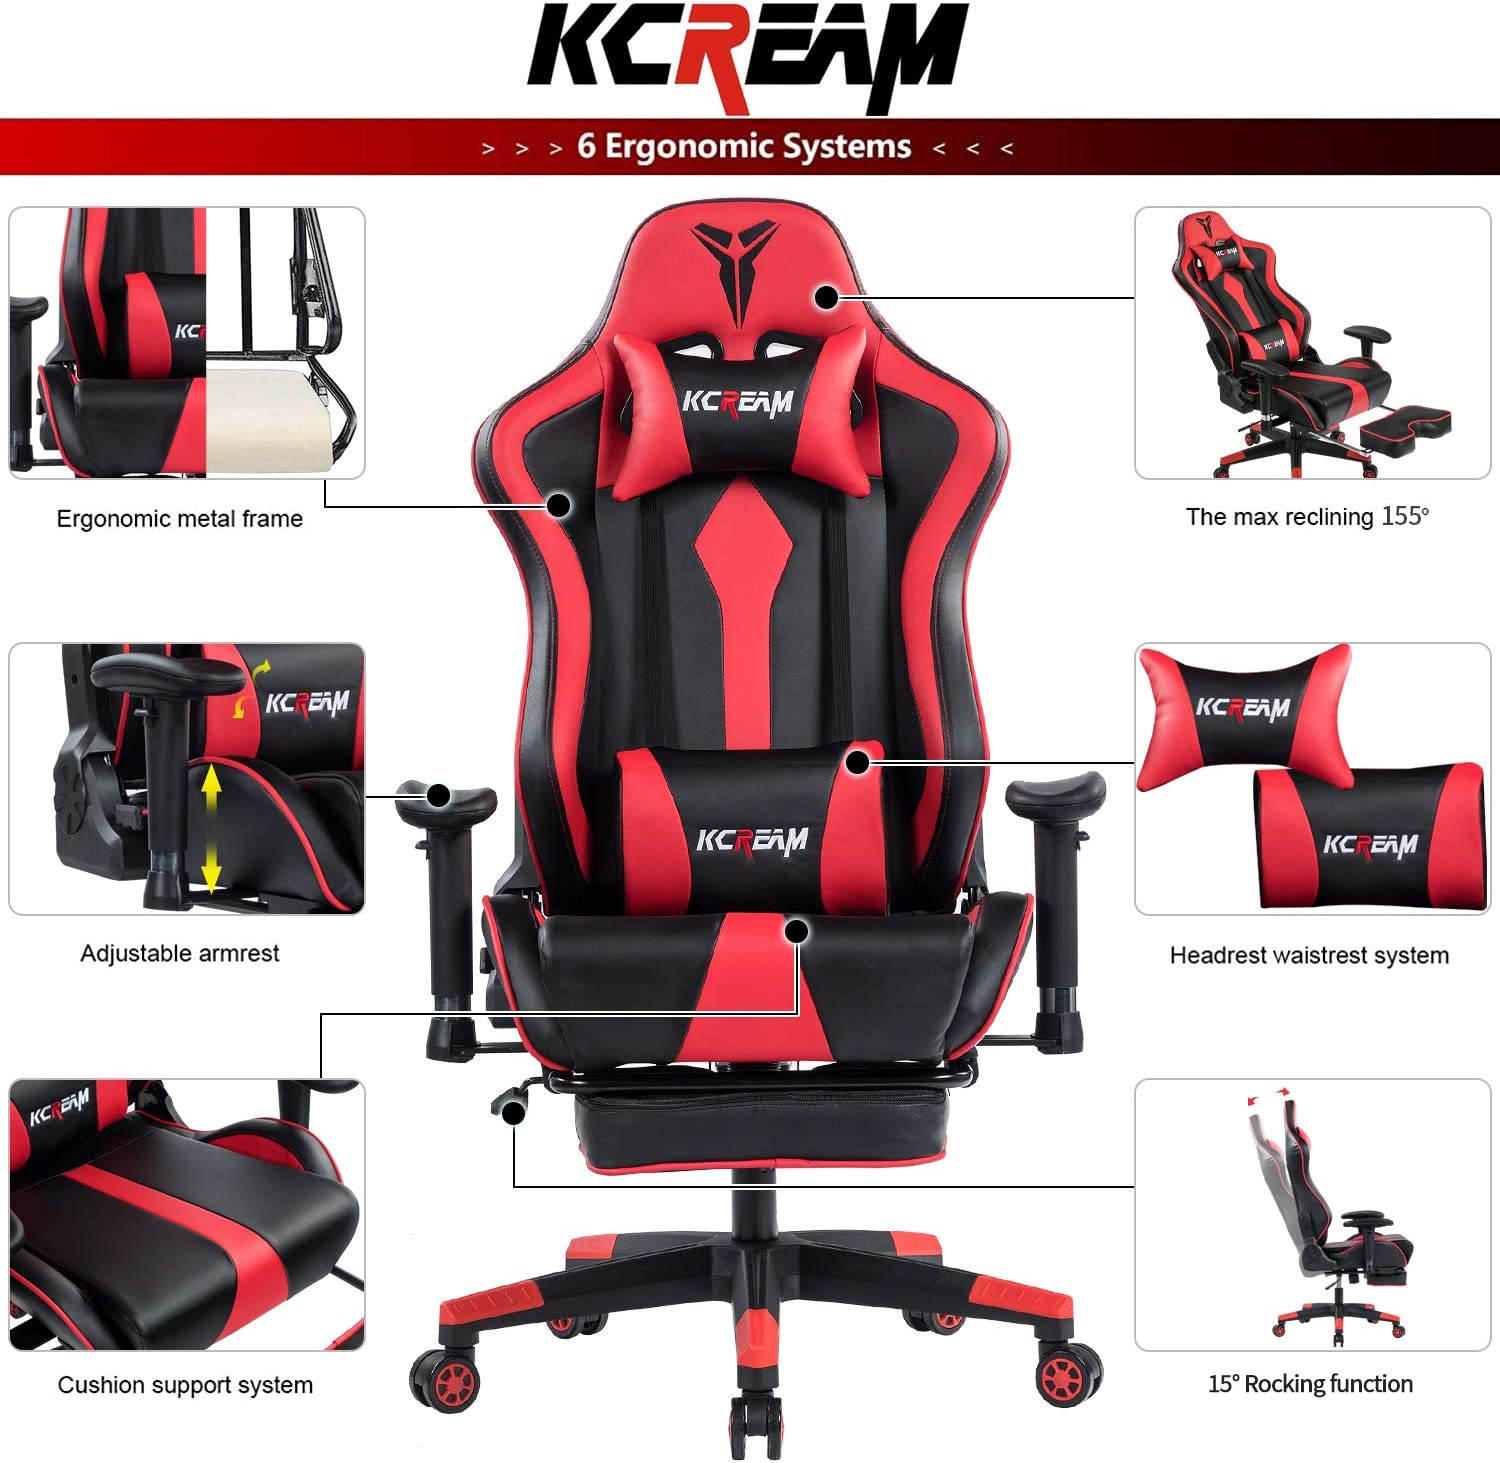 Red KCREAM E-Sports Chair with Headrest and Lumbar Pillows PVC Leather Ergonomic High-Back Gaming Chair Adjustable Height Professional Gamer Chair